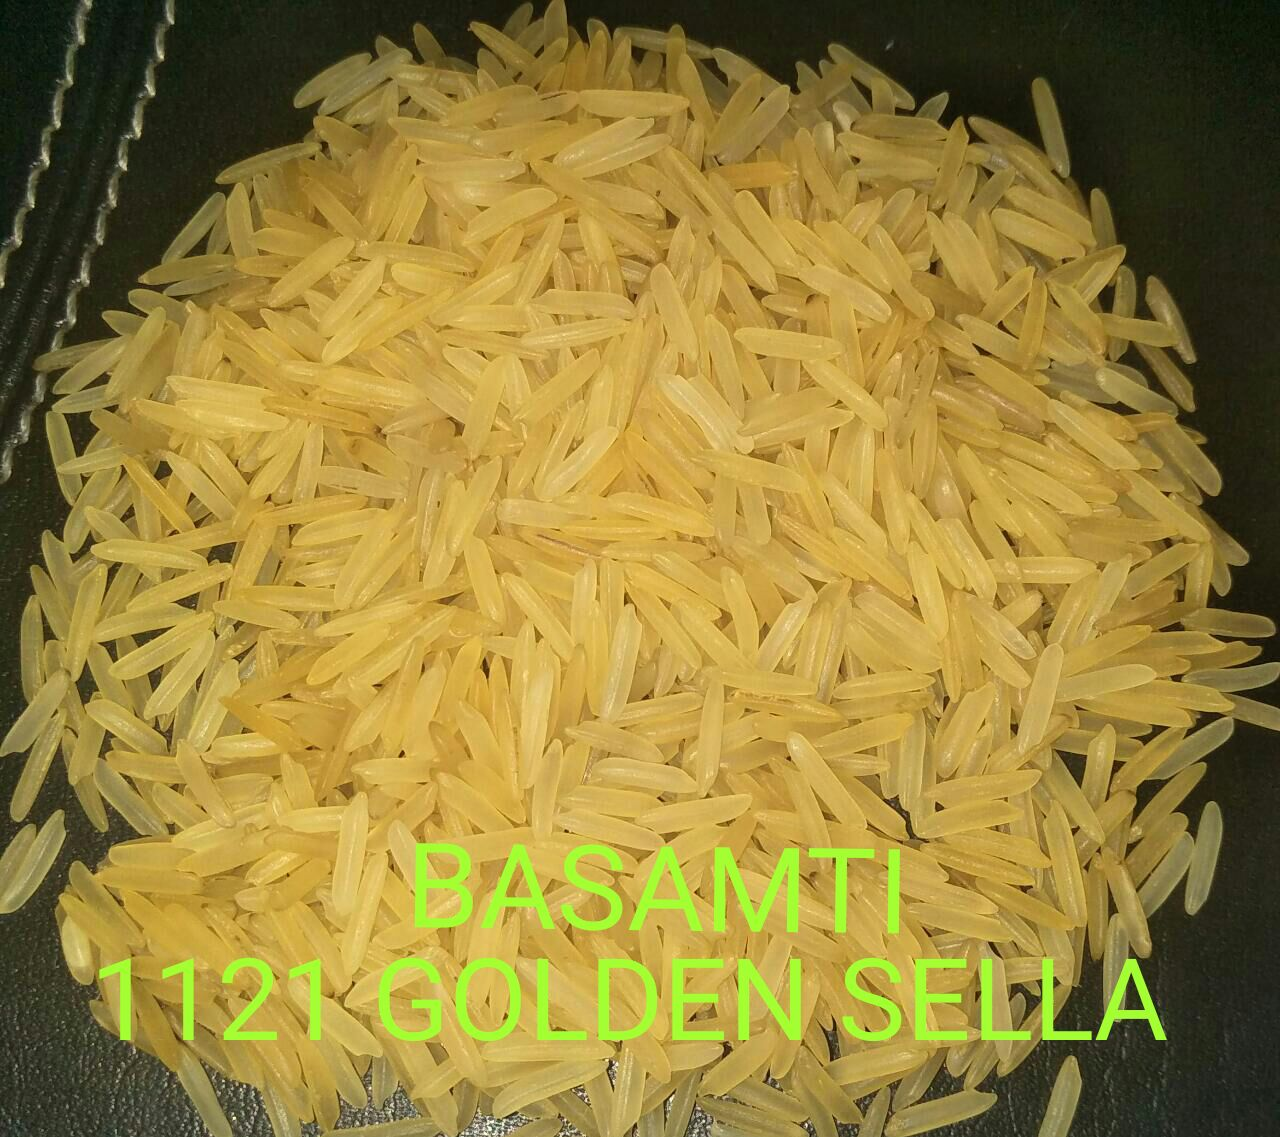 Basmati 1121 Golden Sella Rice : Manufacturers, Suppliers